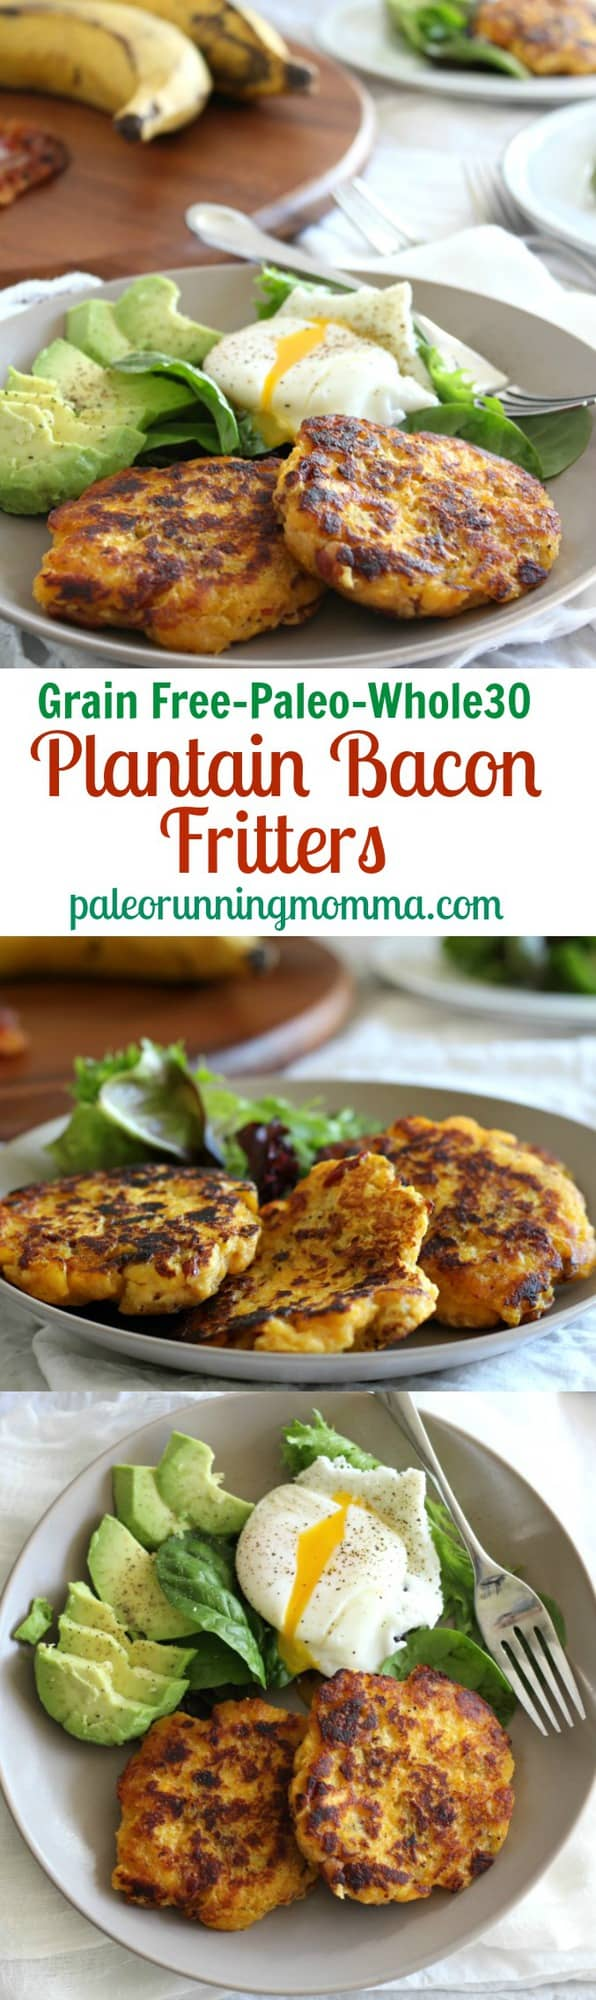 Plantain Bacon Fritters {Grain free, paleo, whole30}